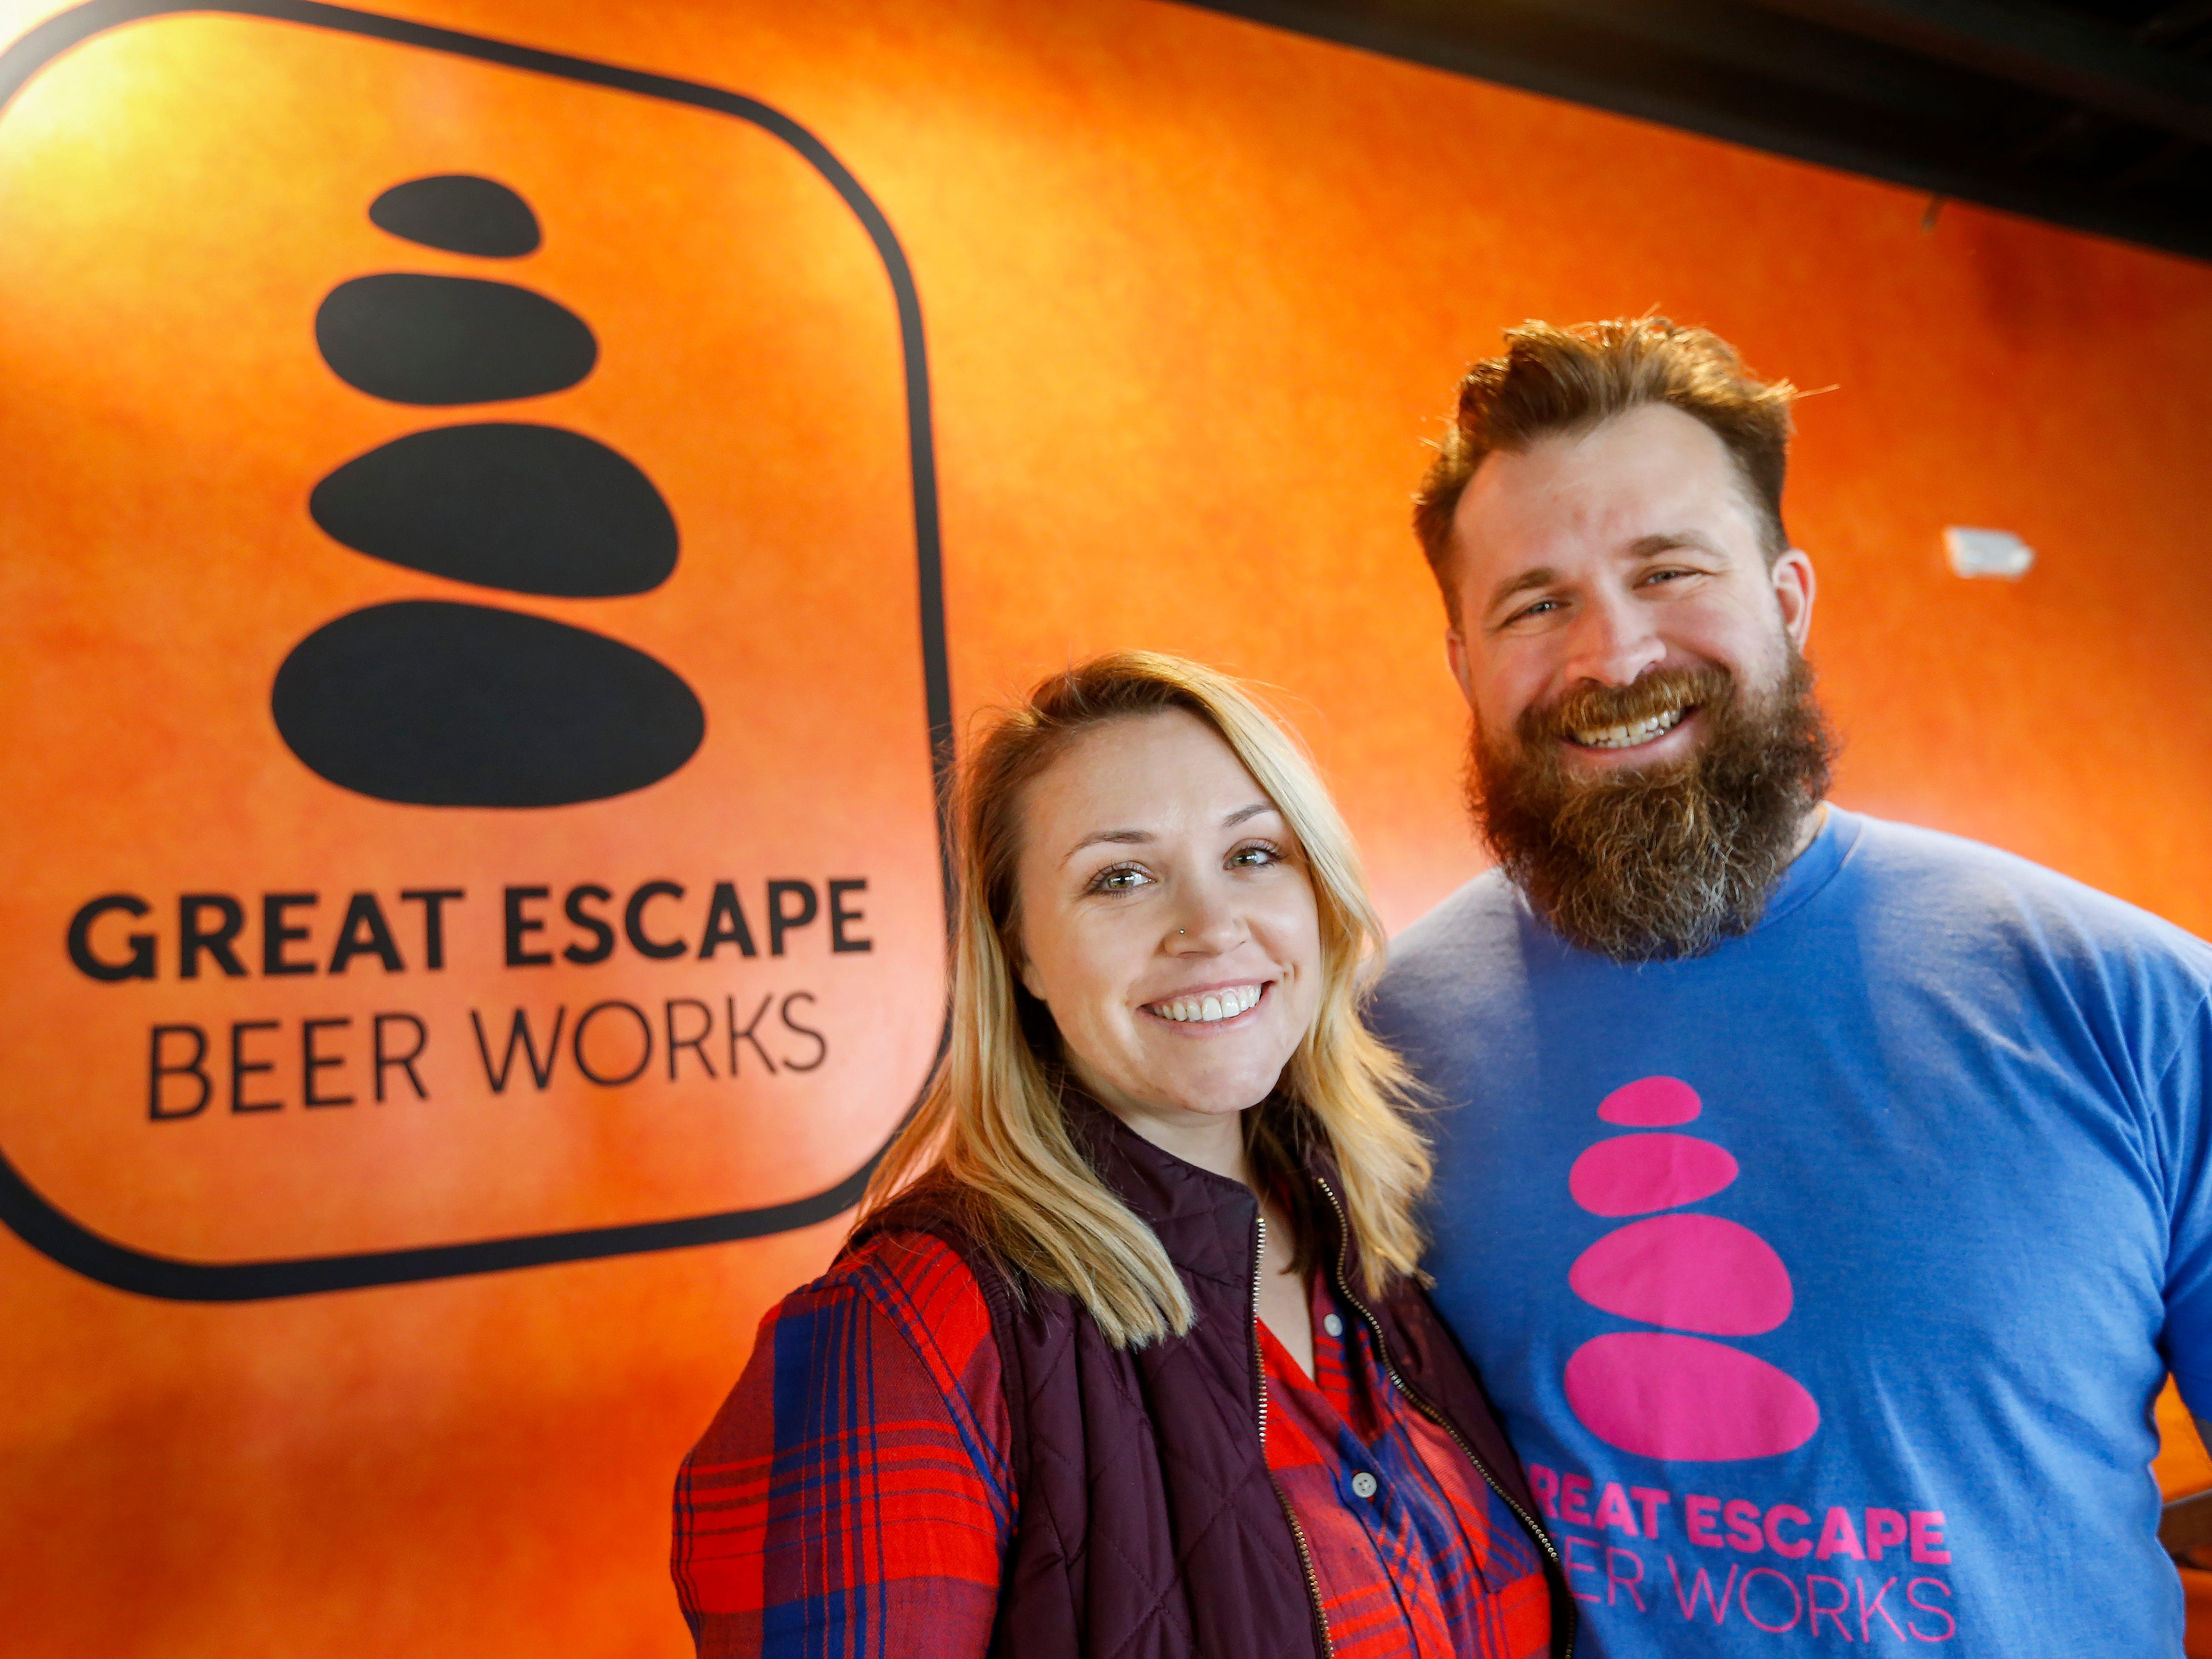 Owners of Great Escape Beer Works want brewery to be a spot for 'meeting new friends'